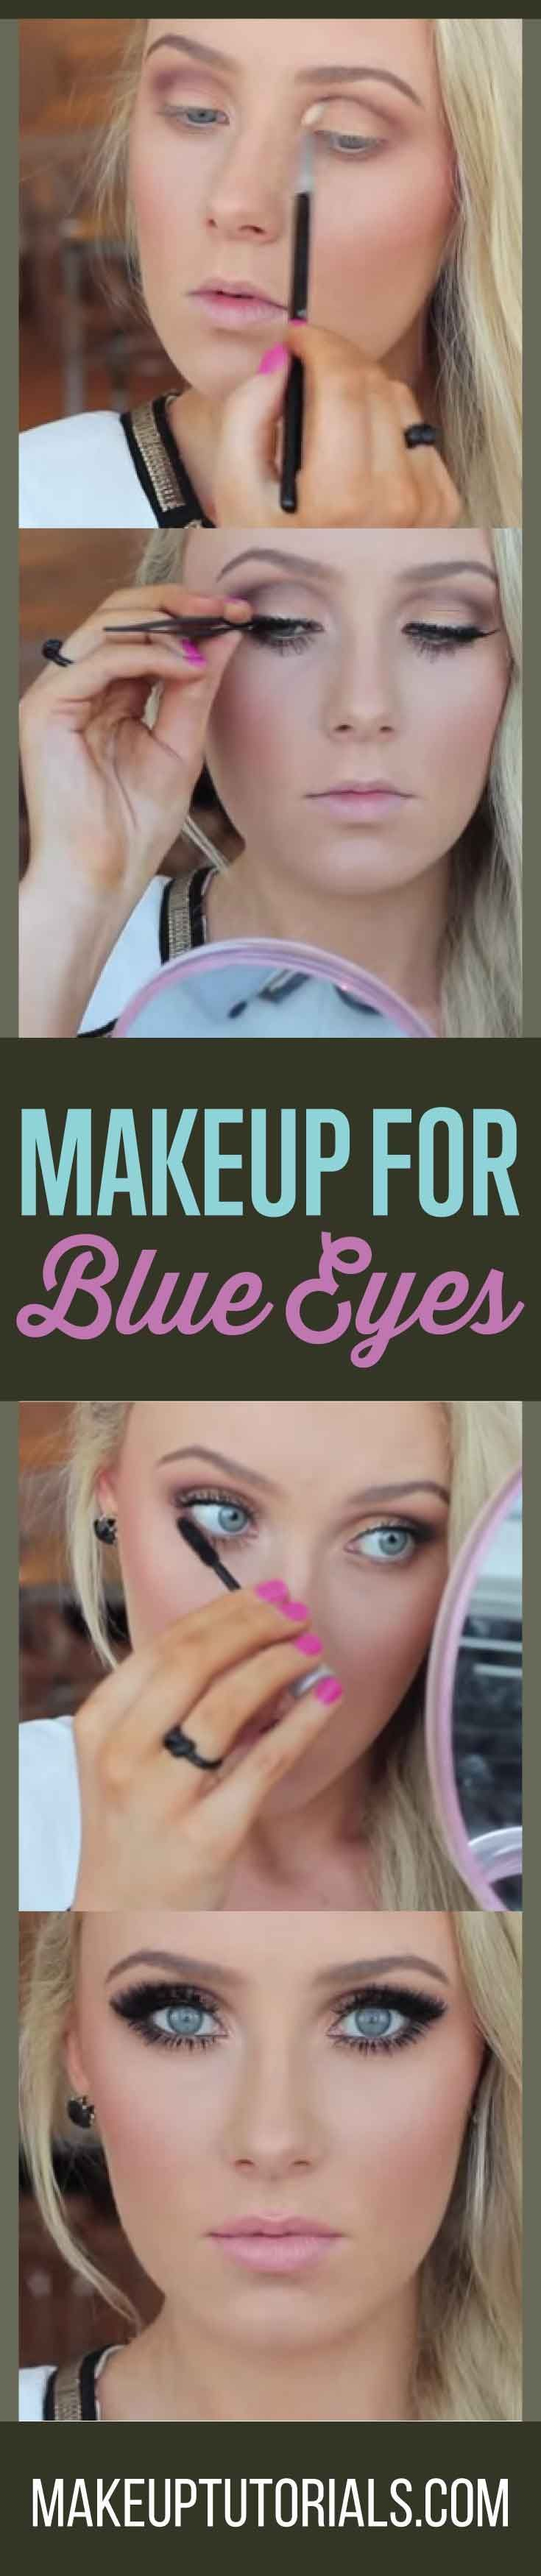 How to do good makeup for blue eyes